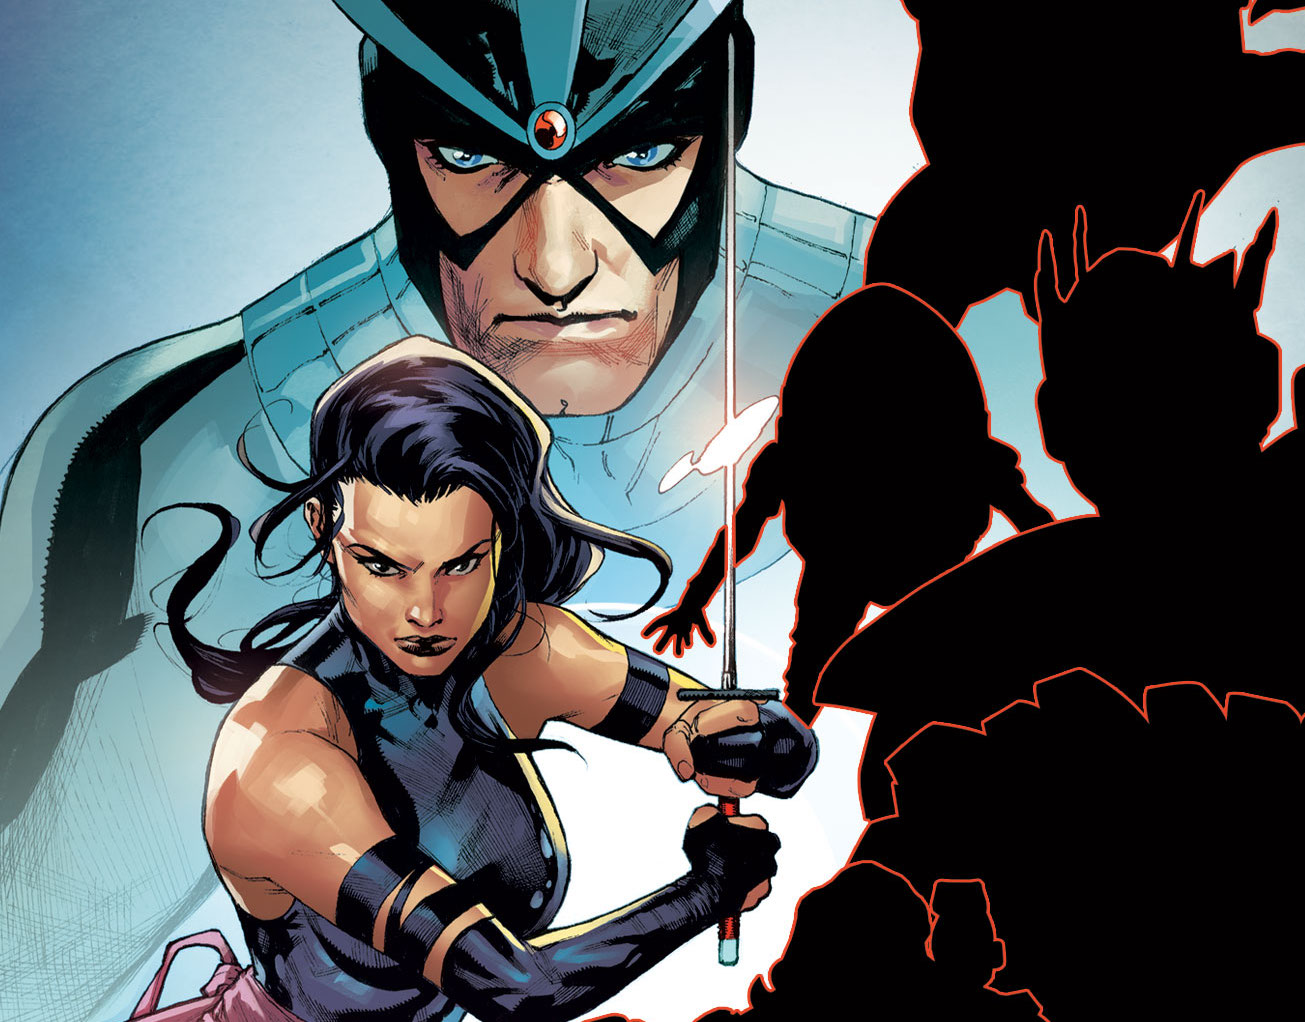 Havok and Psylocke are revealed in new promo image.